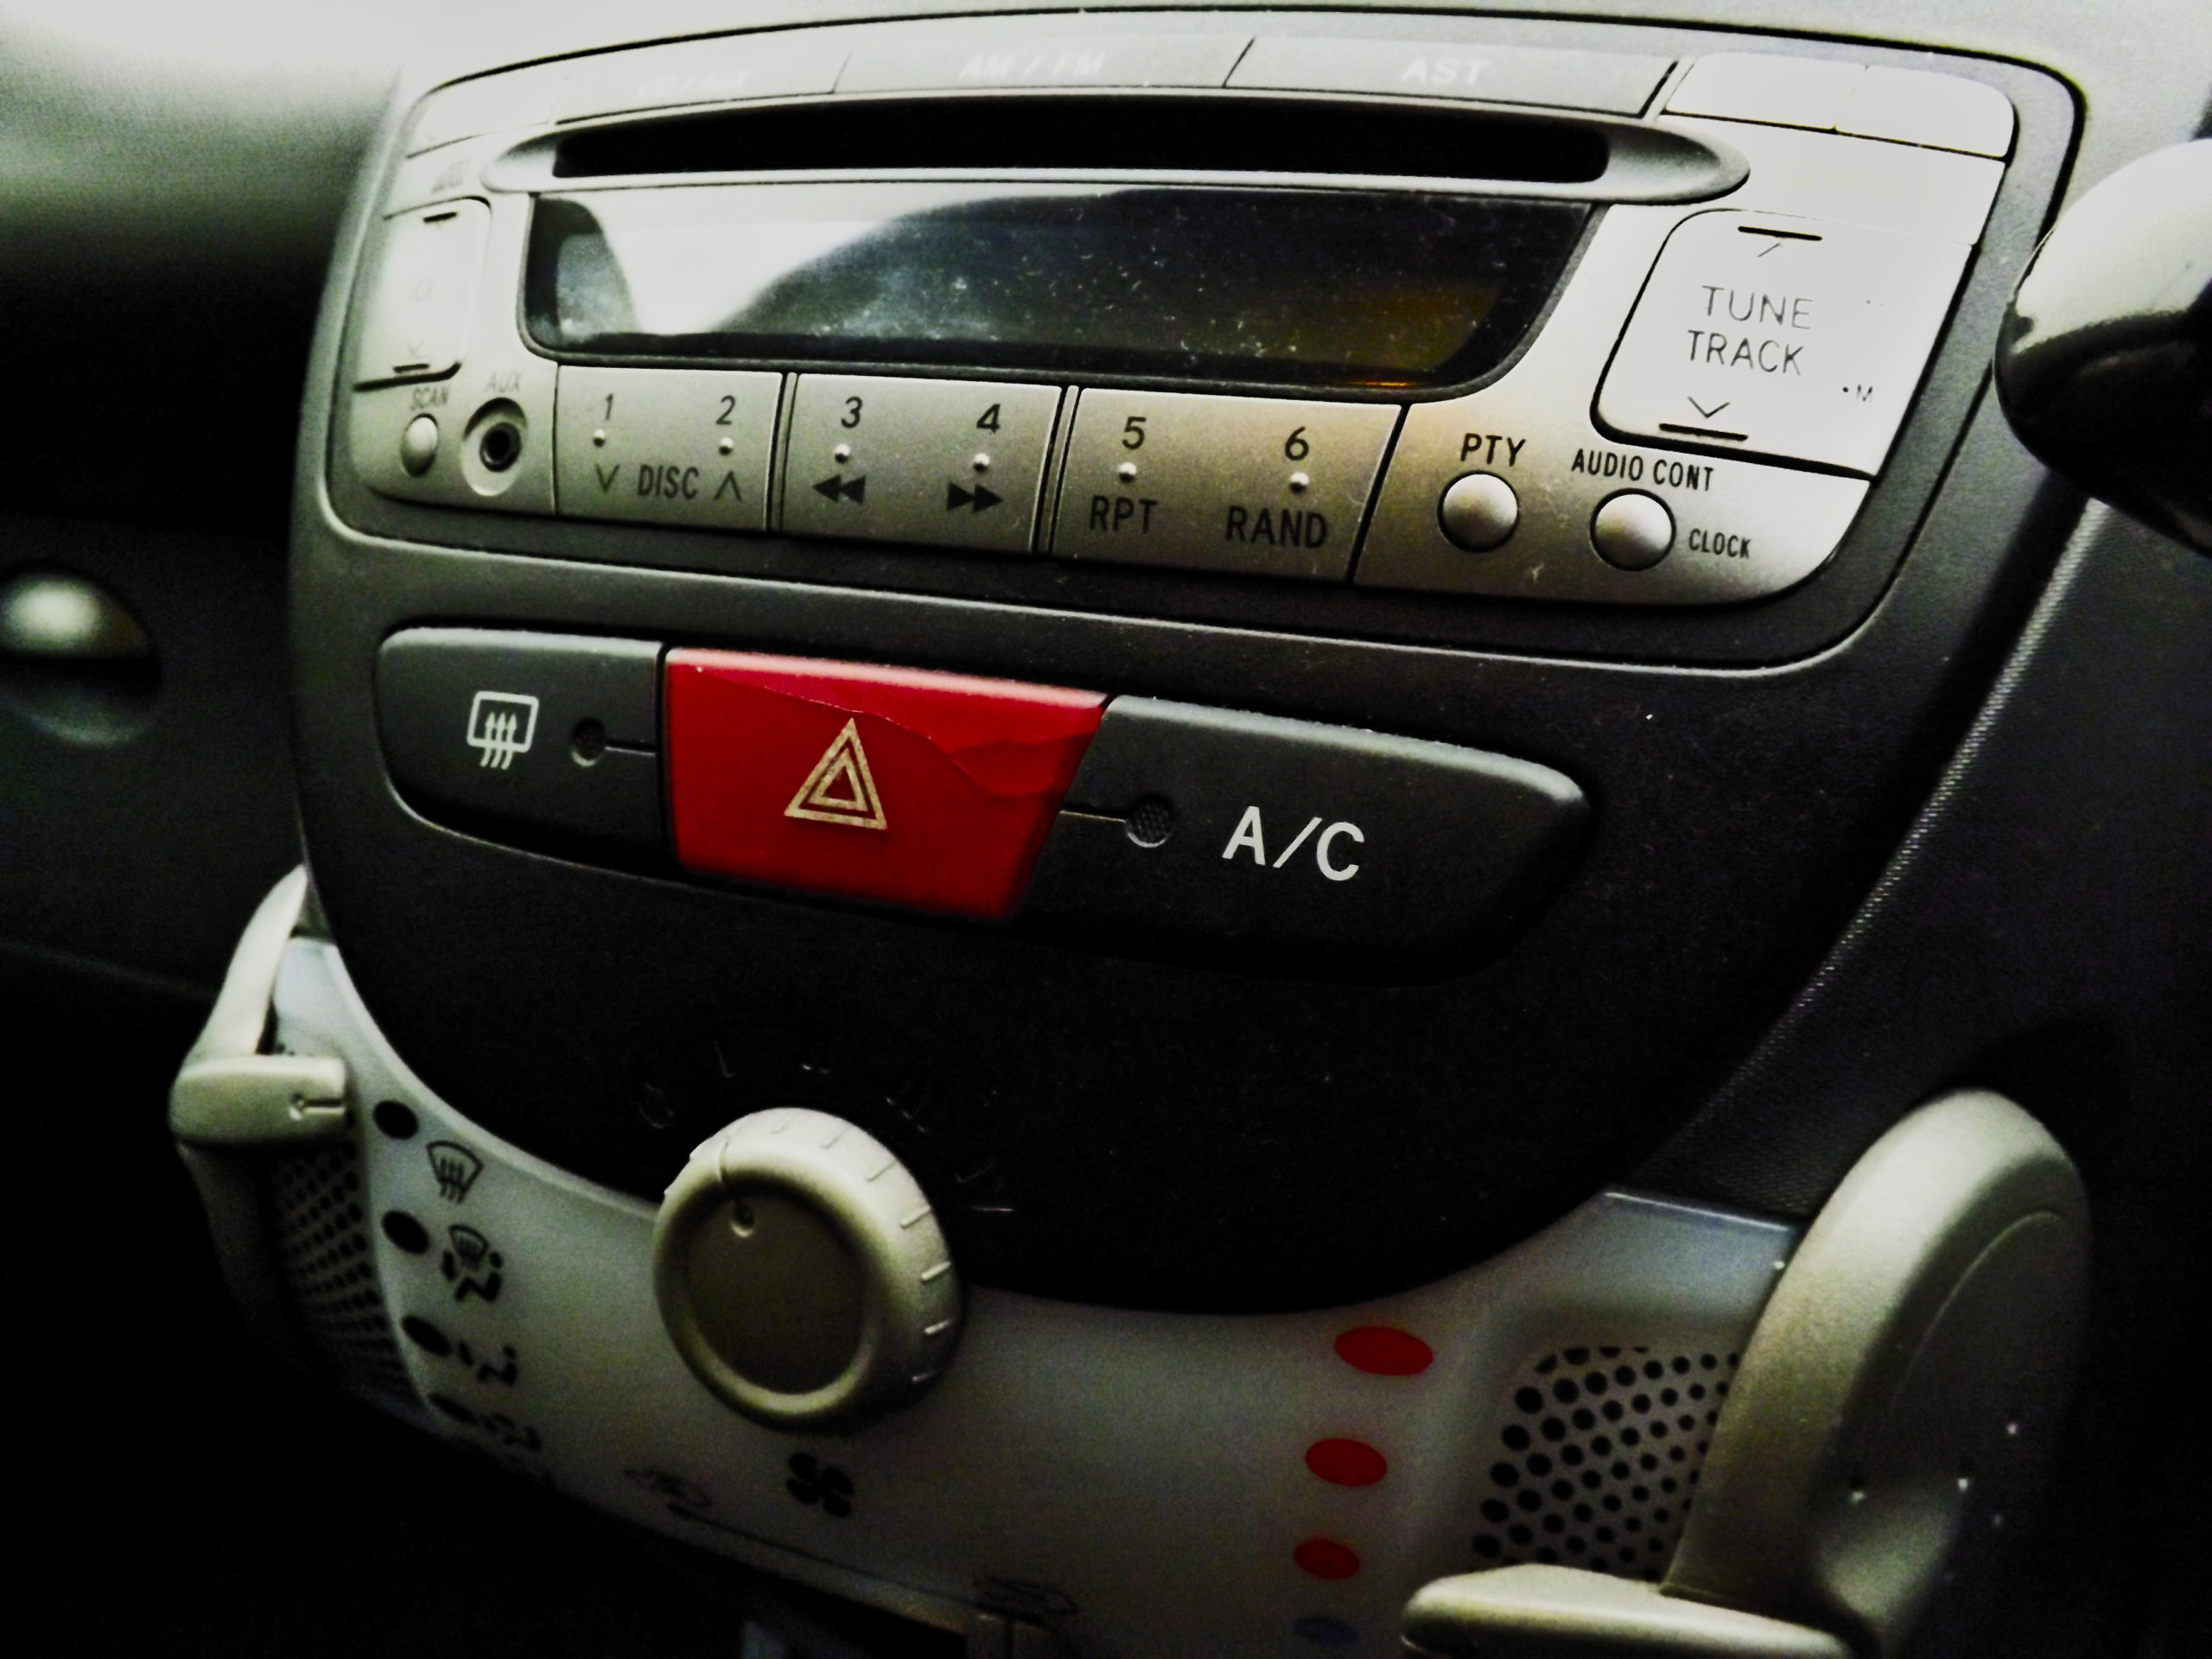 Cracked hazard light switch is a common problem with the Peugeot 107.